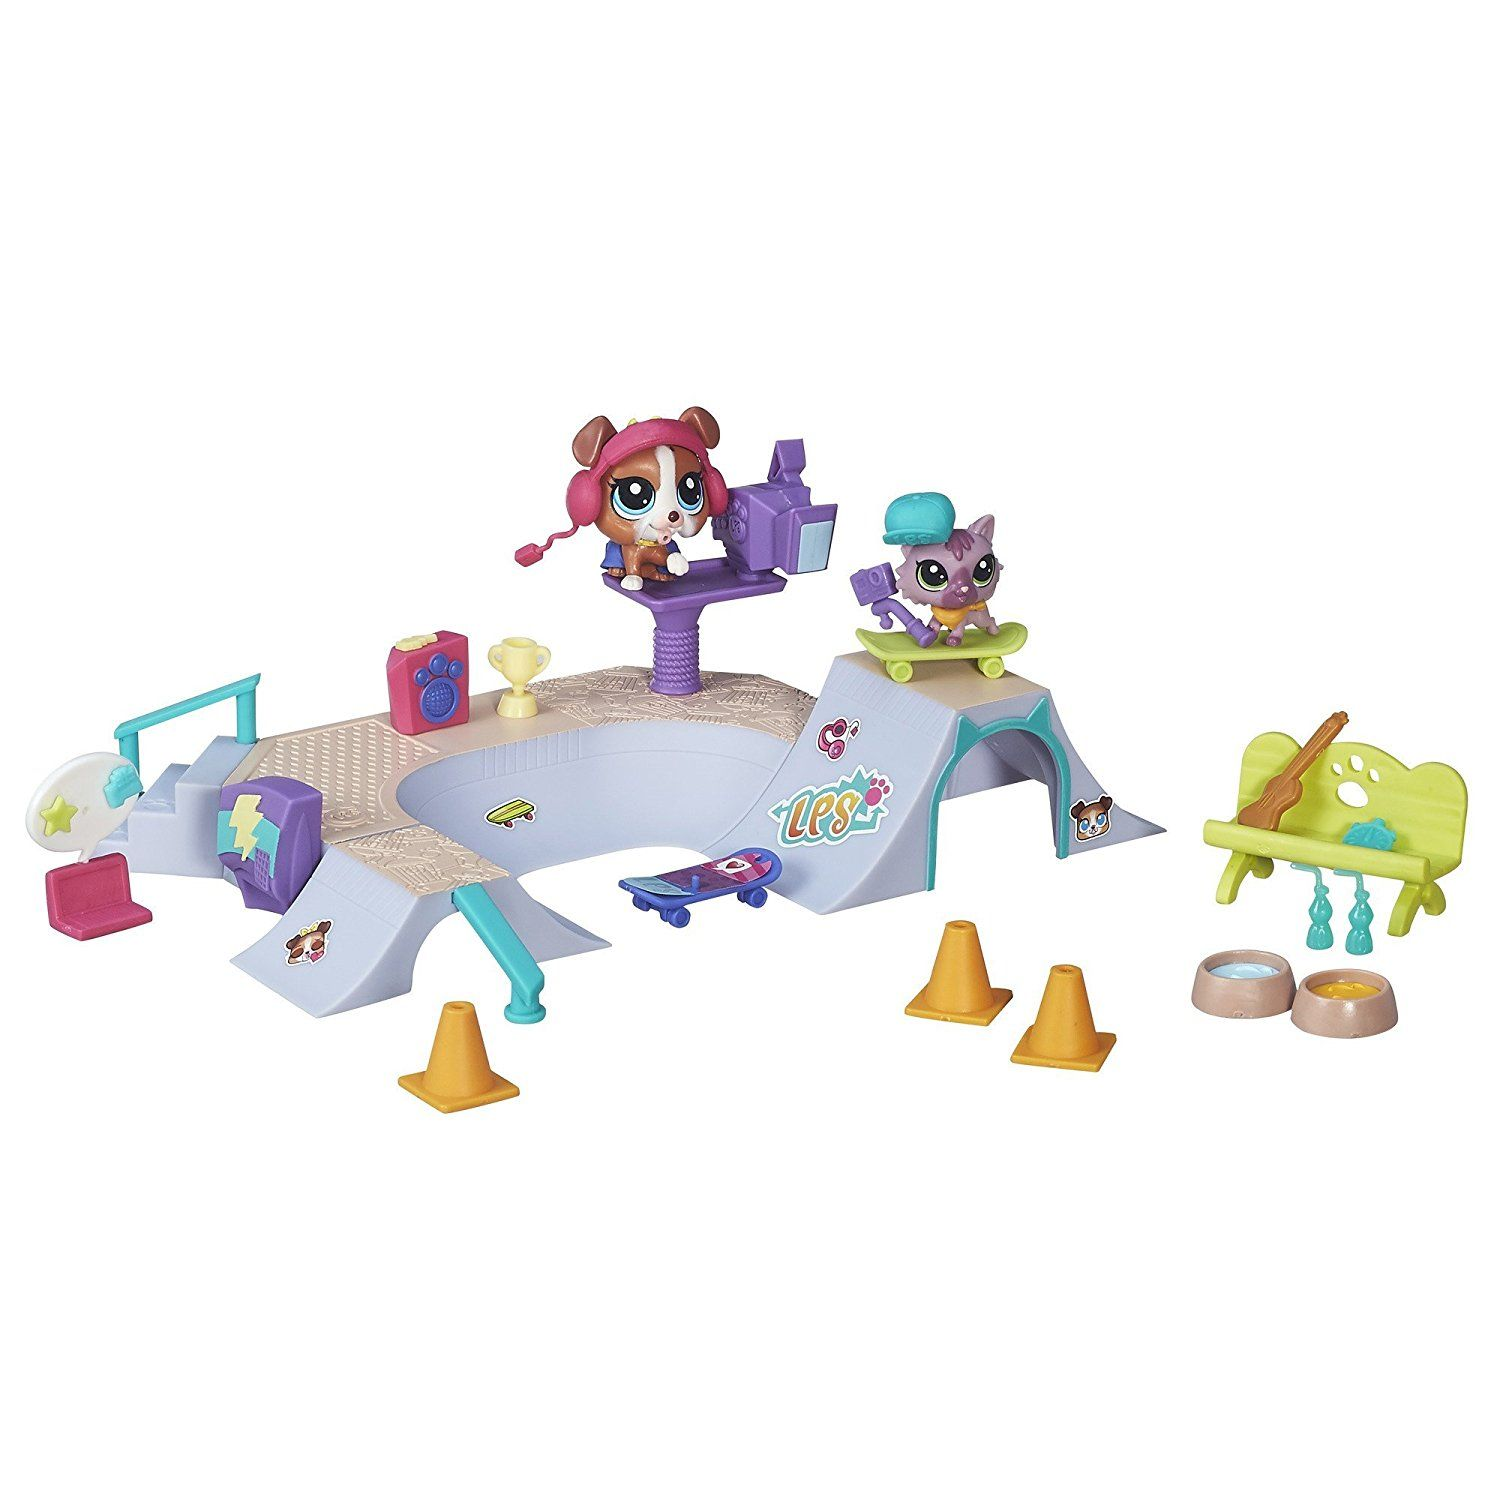 Amazon Com Littlest Pet Shop Skate Park Toys Games Little Pet Shop Toys Lps Pets Lps Toys